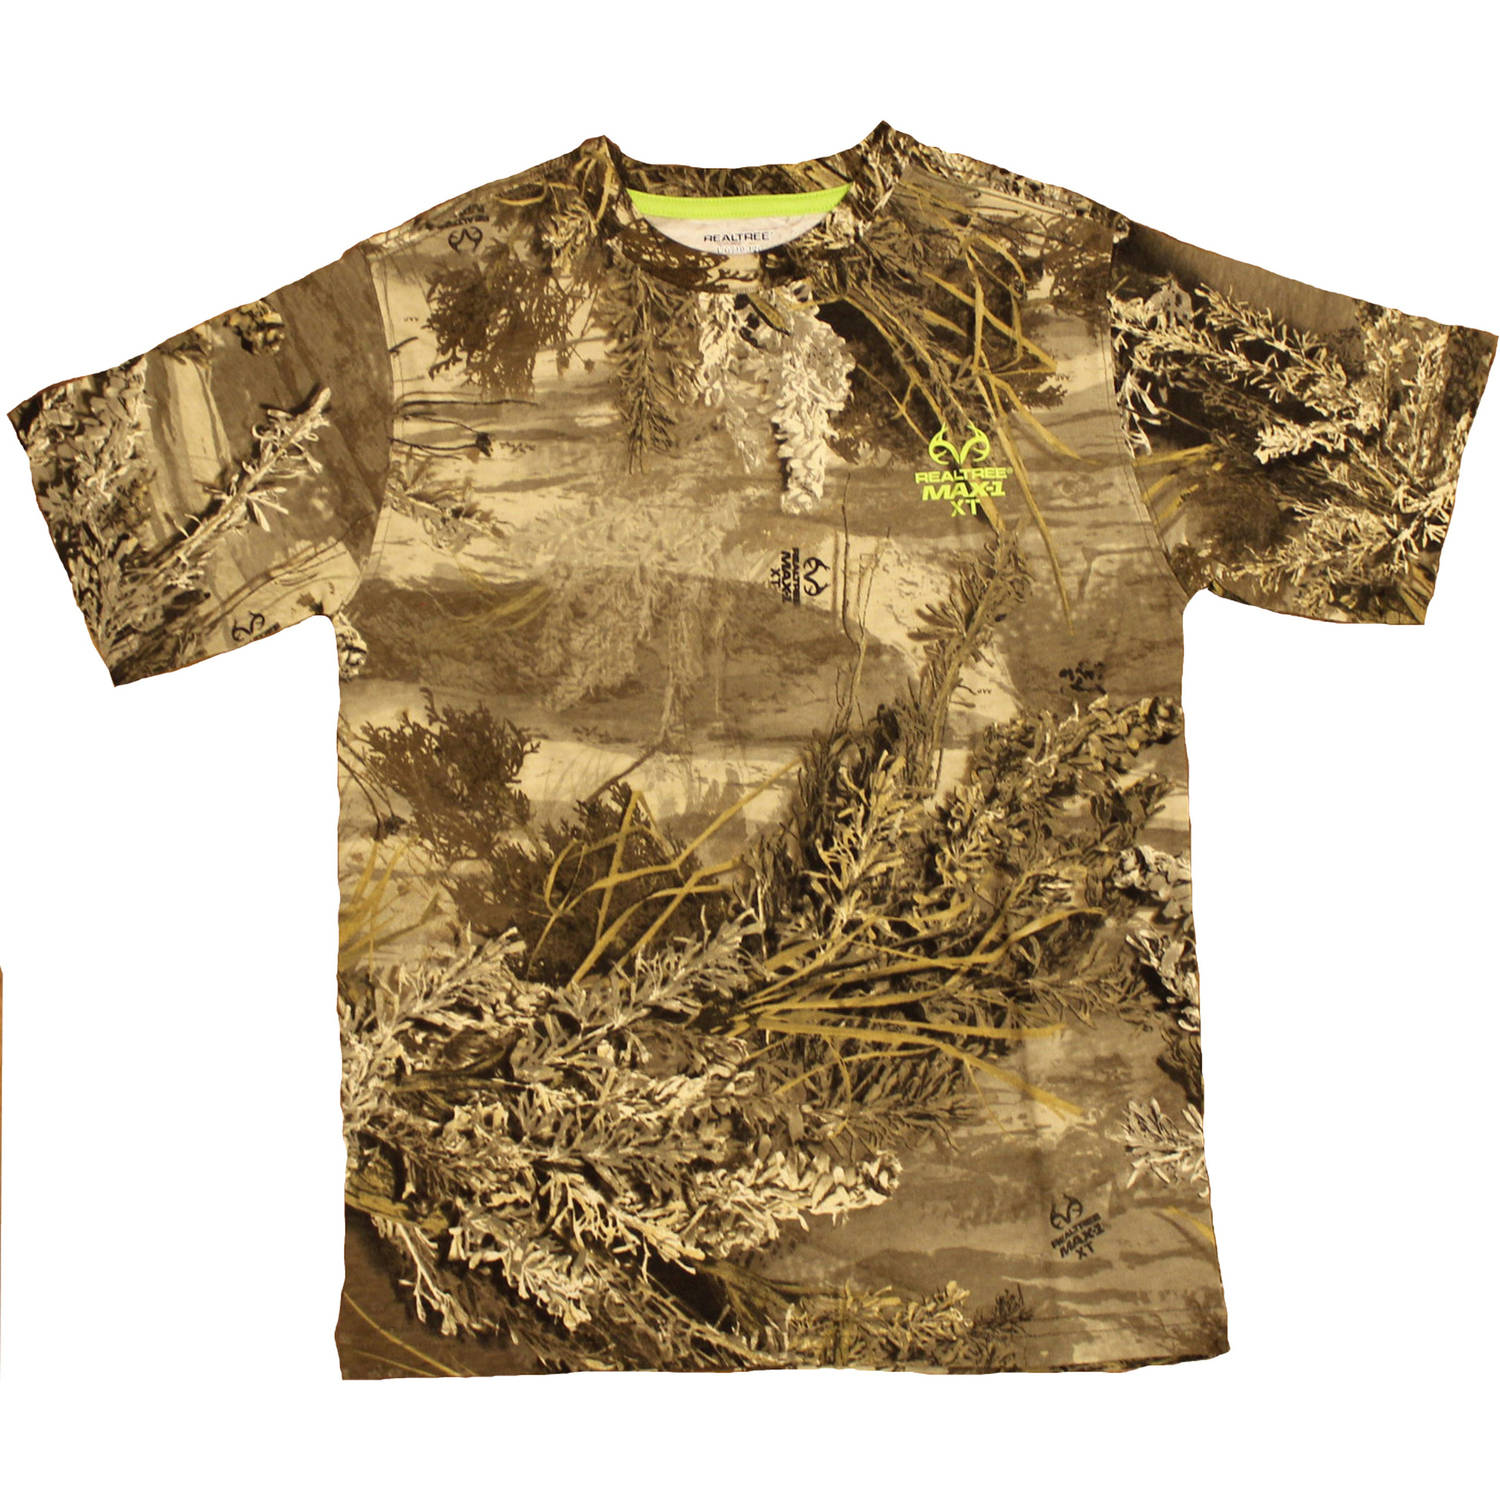 Boy's Short Sleeve Camouflage Tee, Available in Multiple Patterns